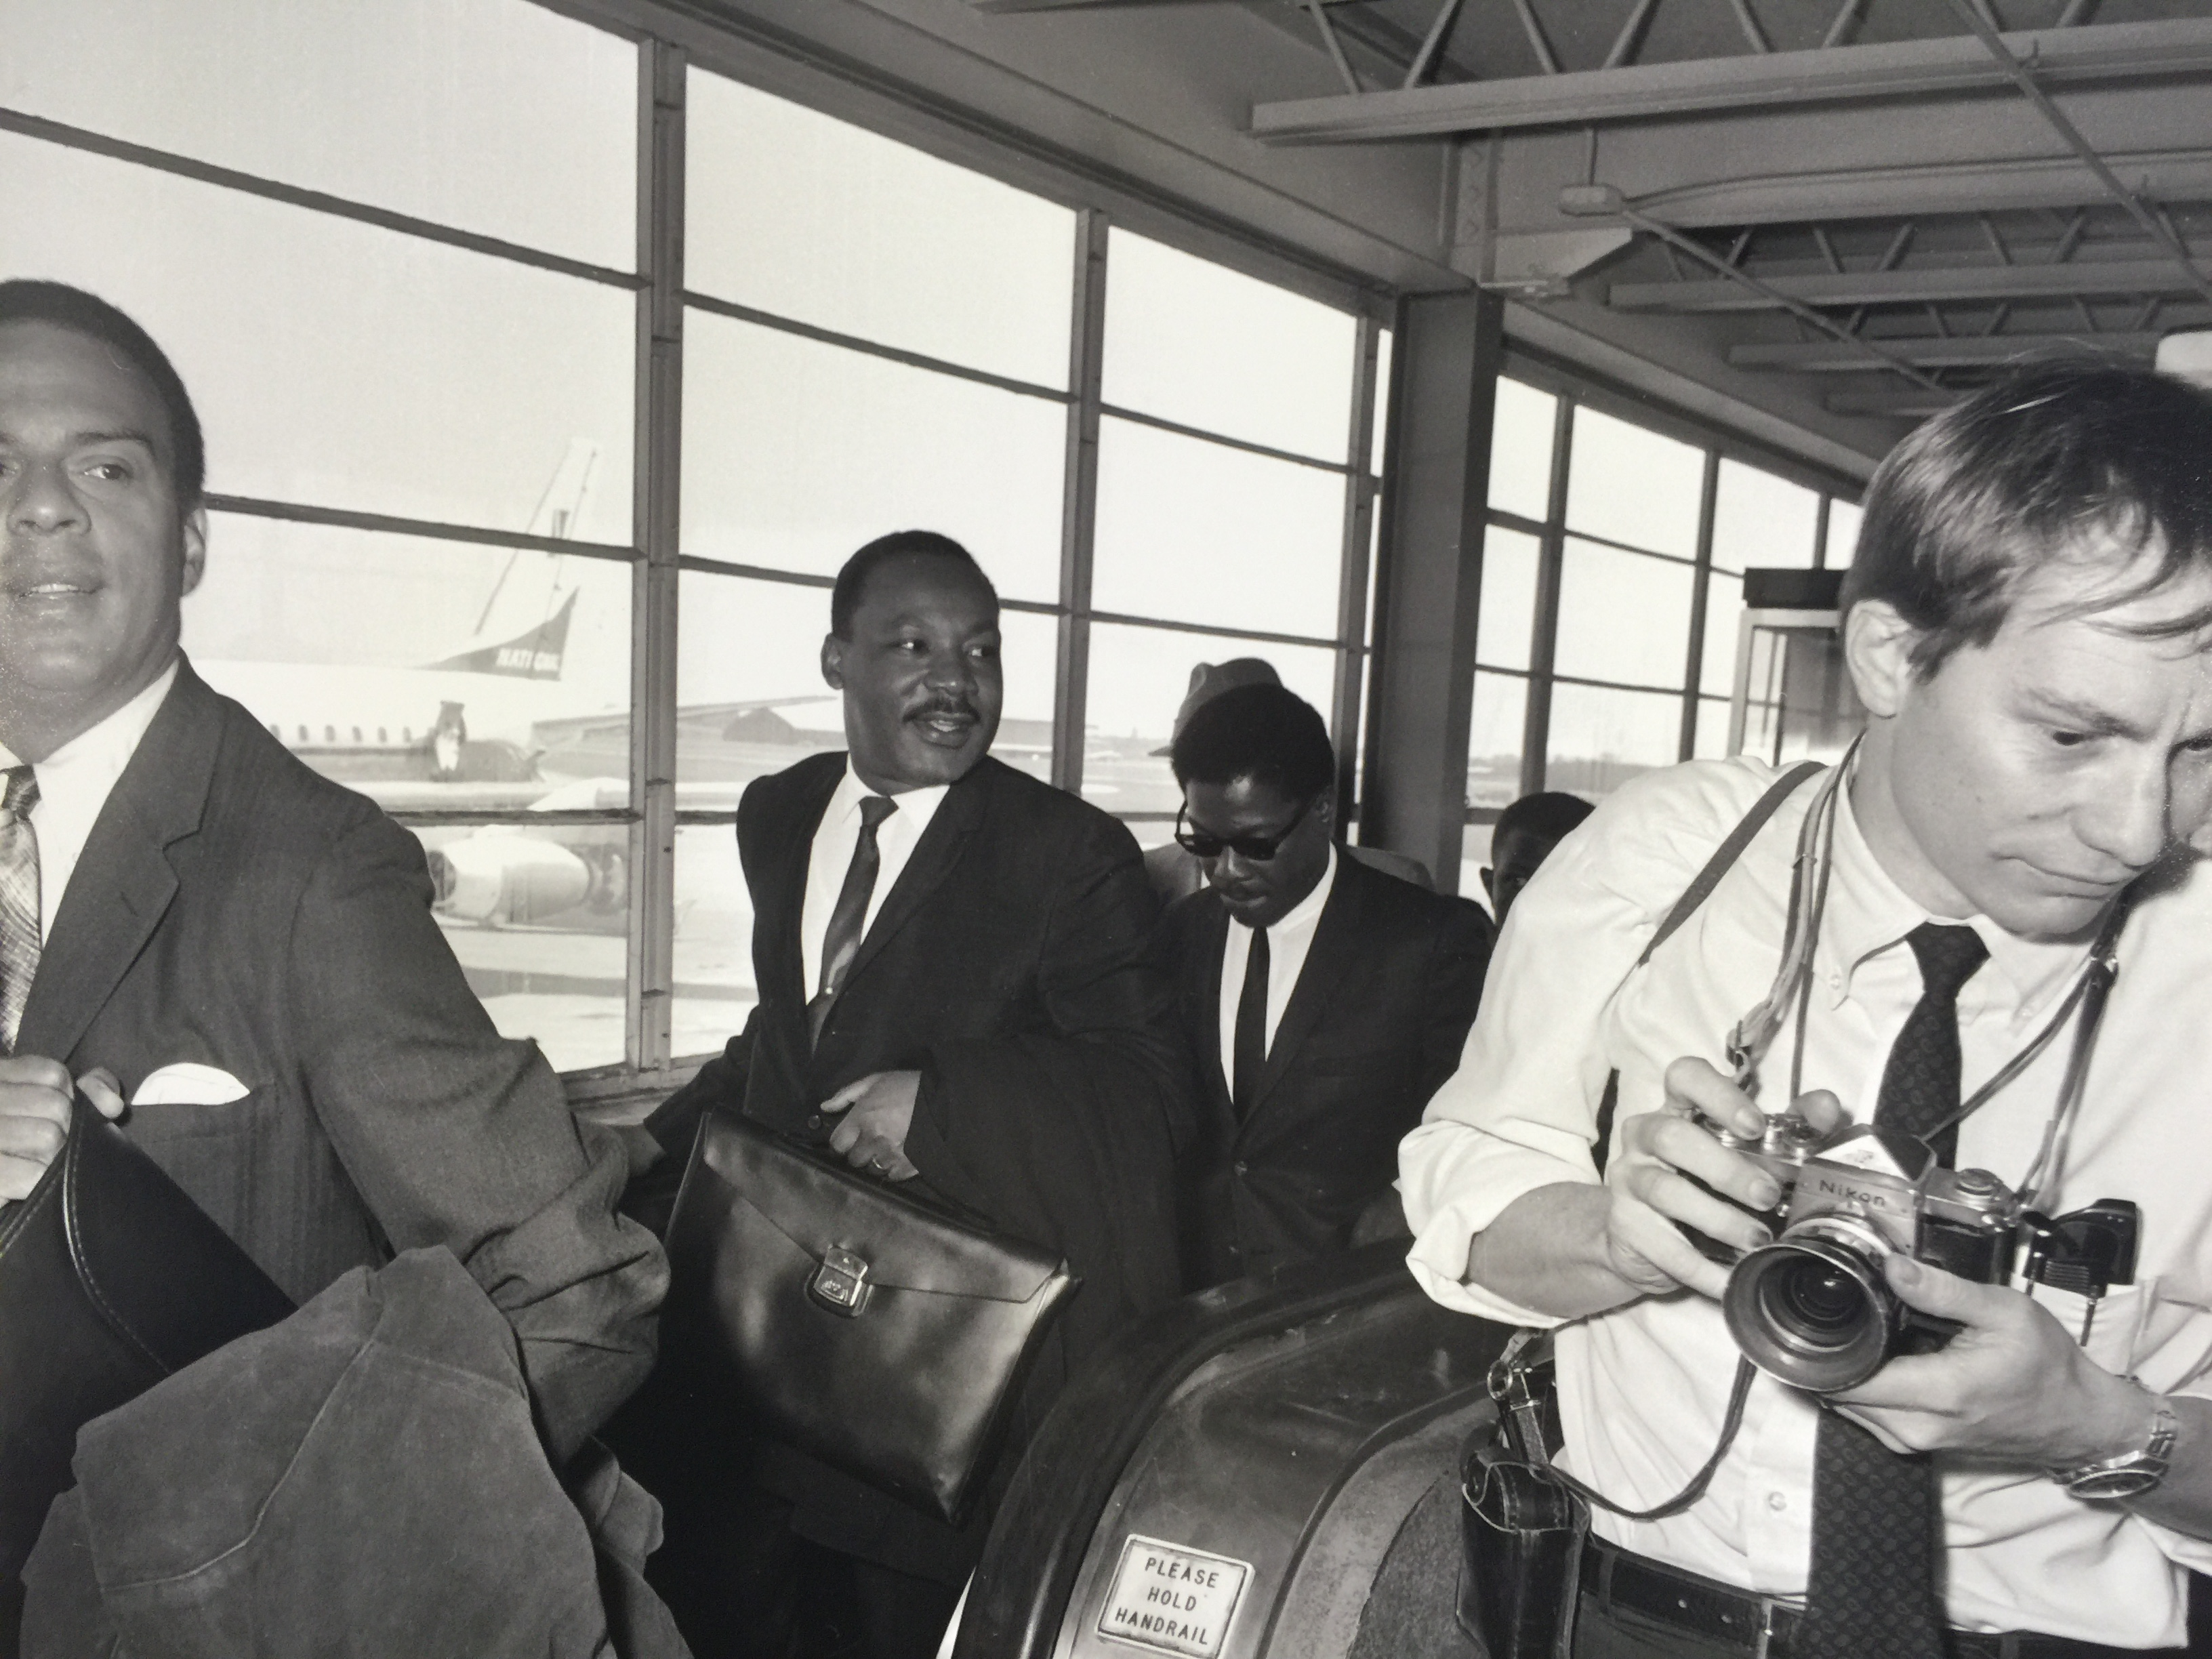 "<div class=""meta image-caption""><div class=""origin-logo origin-image ktrk""><span>KTRK</span></div><span class=""caption-text"">Dr. Martin Luther King Jr. makes appearance in Houston in 1967. </span></div>"